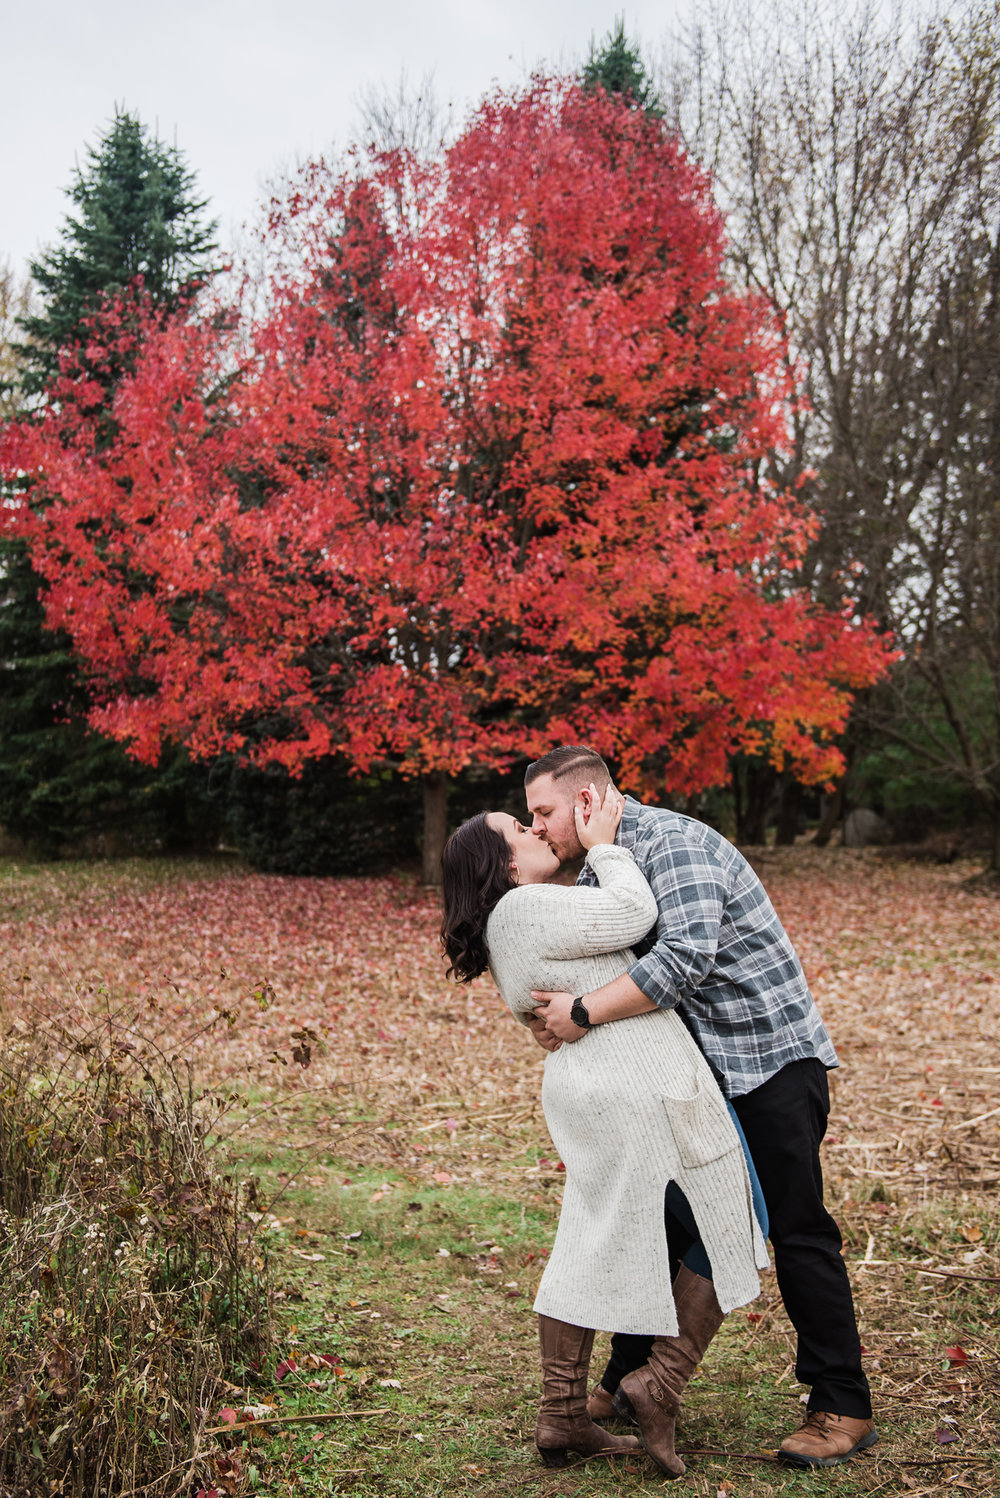 Tinker_Nature_Park_Rochester_Engagement_Session_JILL_STUDIO_Rochester_NY_Photographer_DSC_0429.jpg